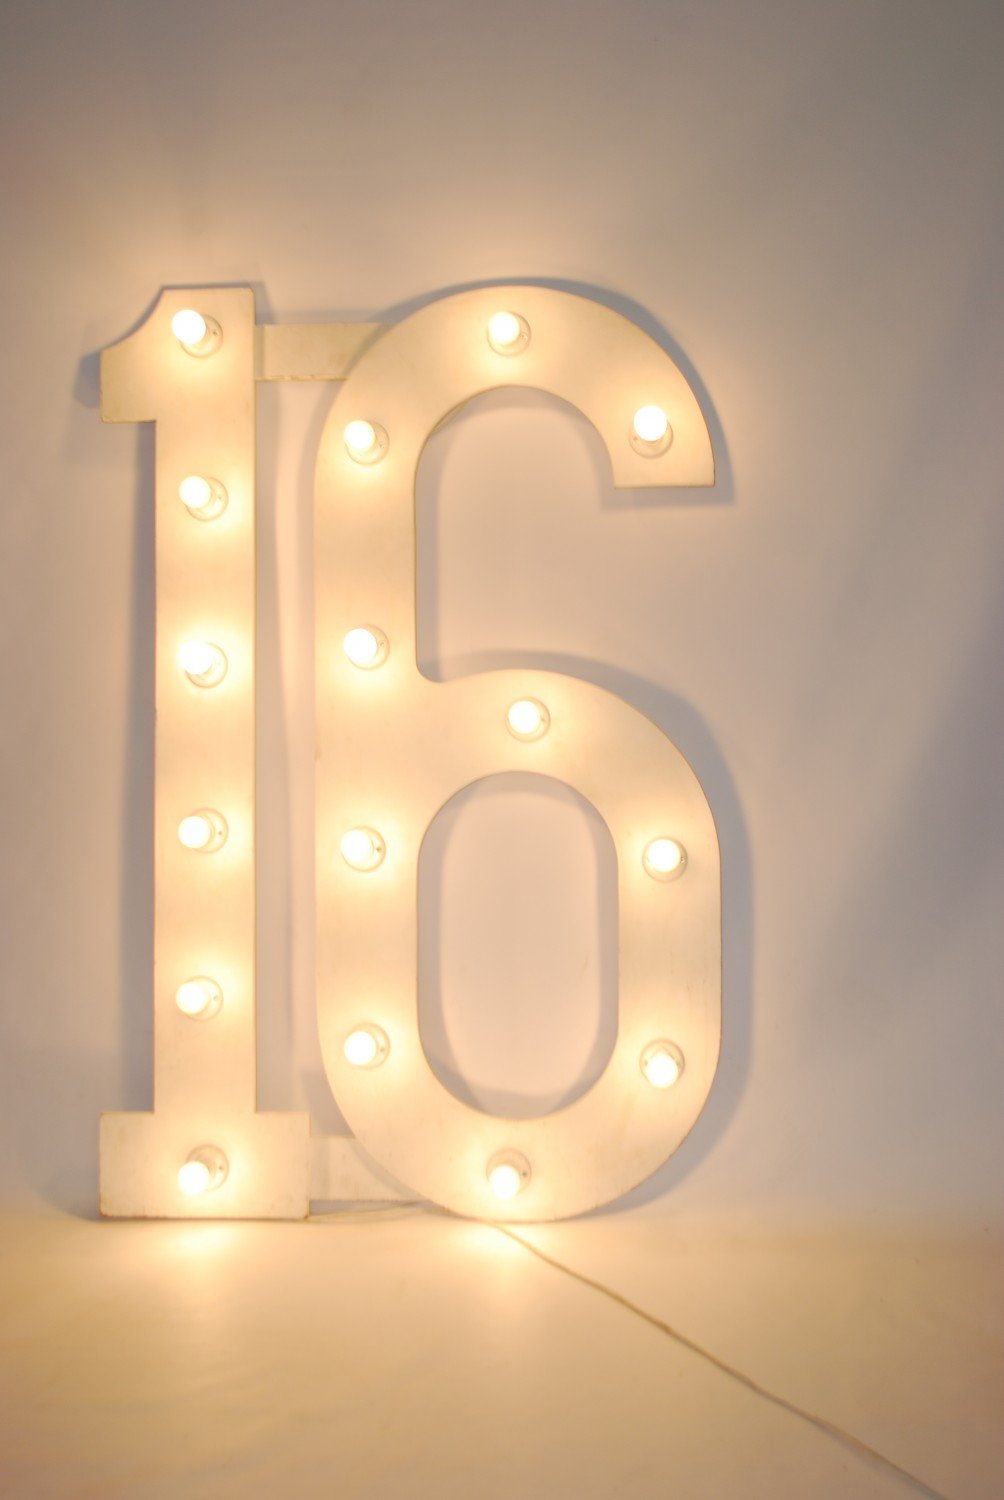 Large Number 16 (with bulbs / on stand) - 1.4m High x 0.85m Wide | Theme  Prop Hire